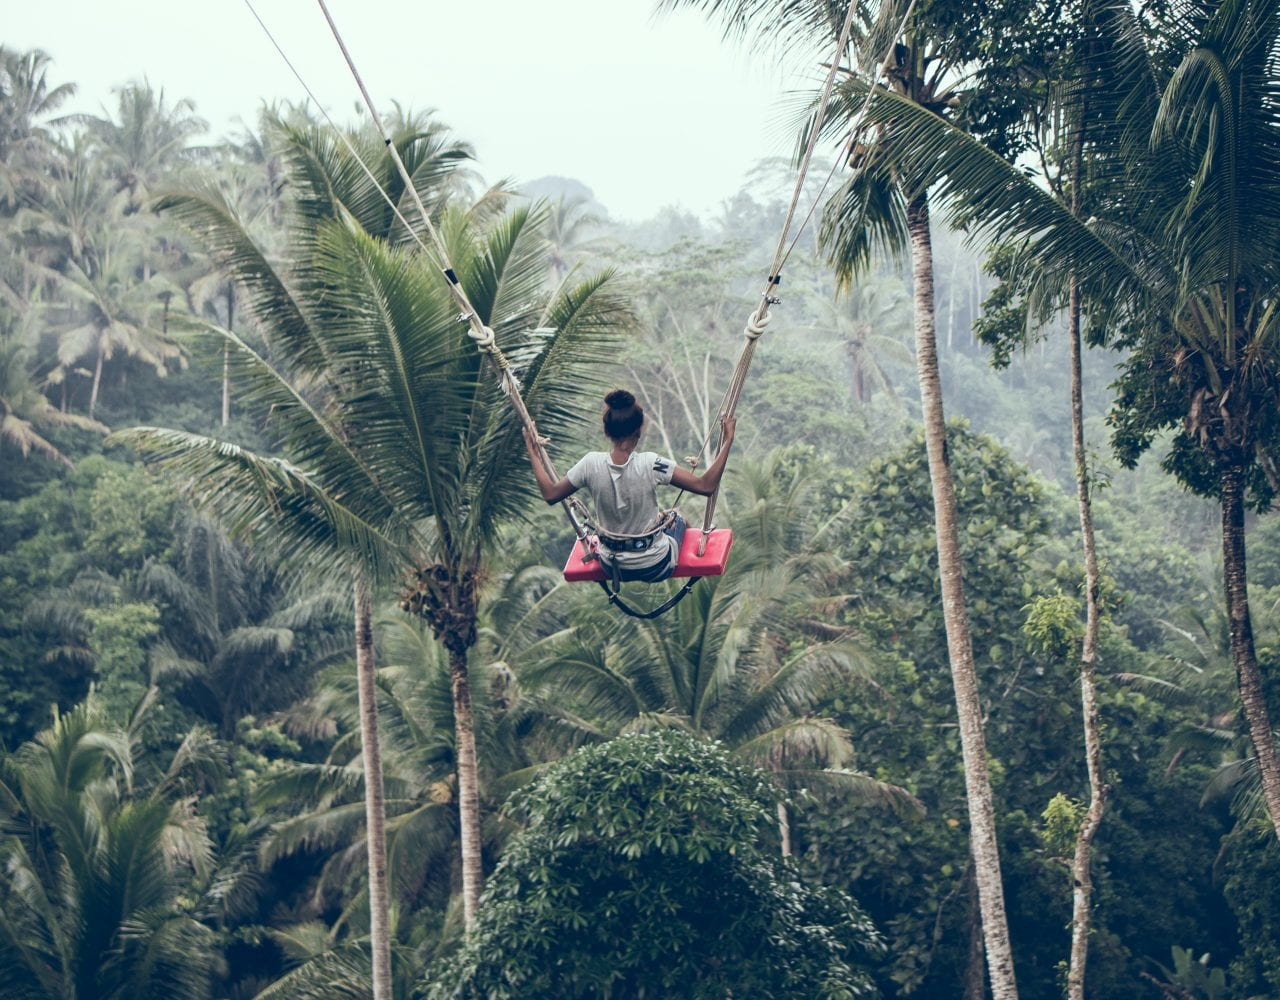 Bali Swing on a group tour